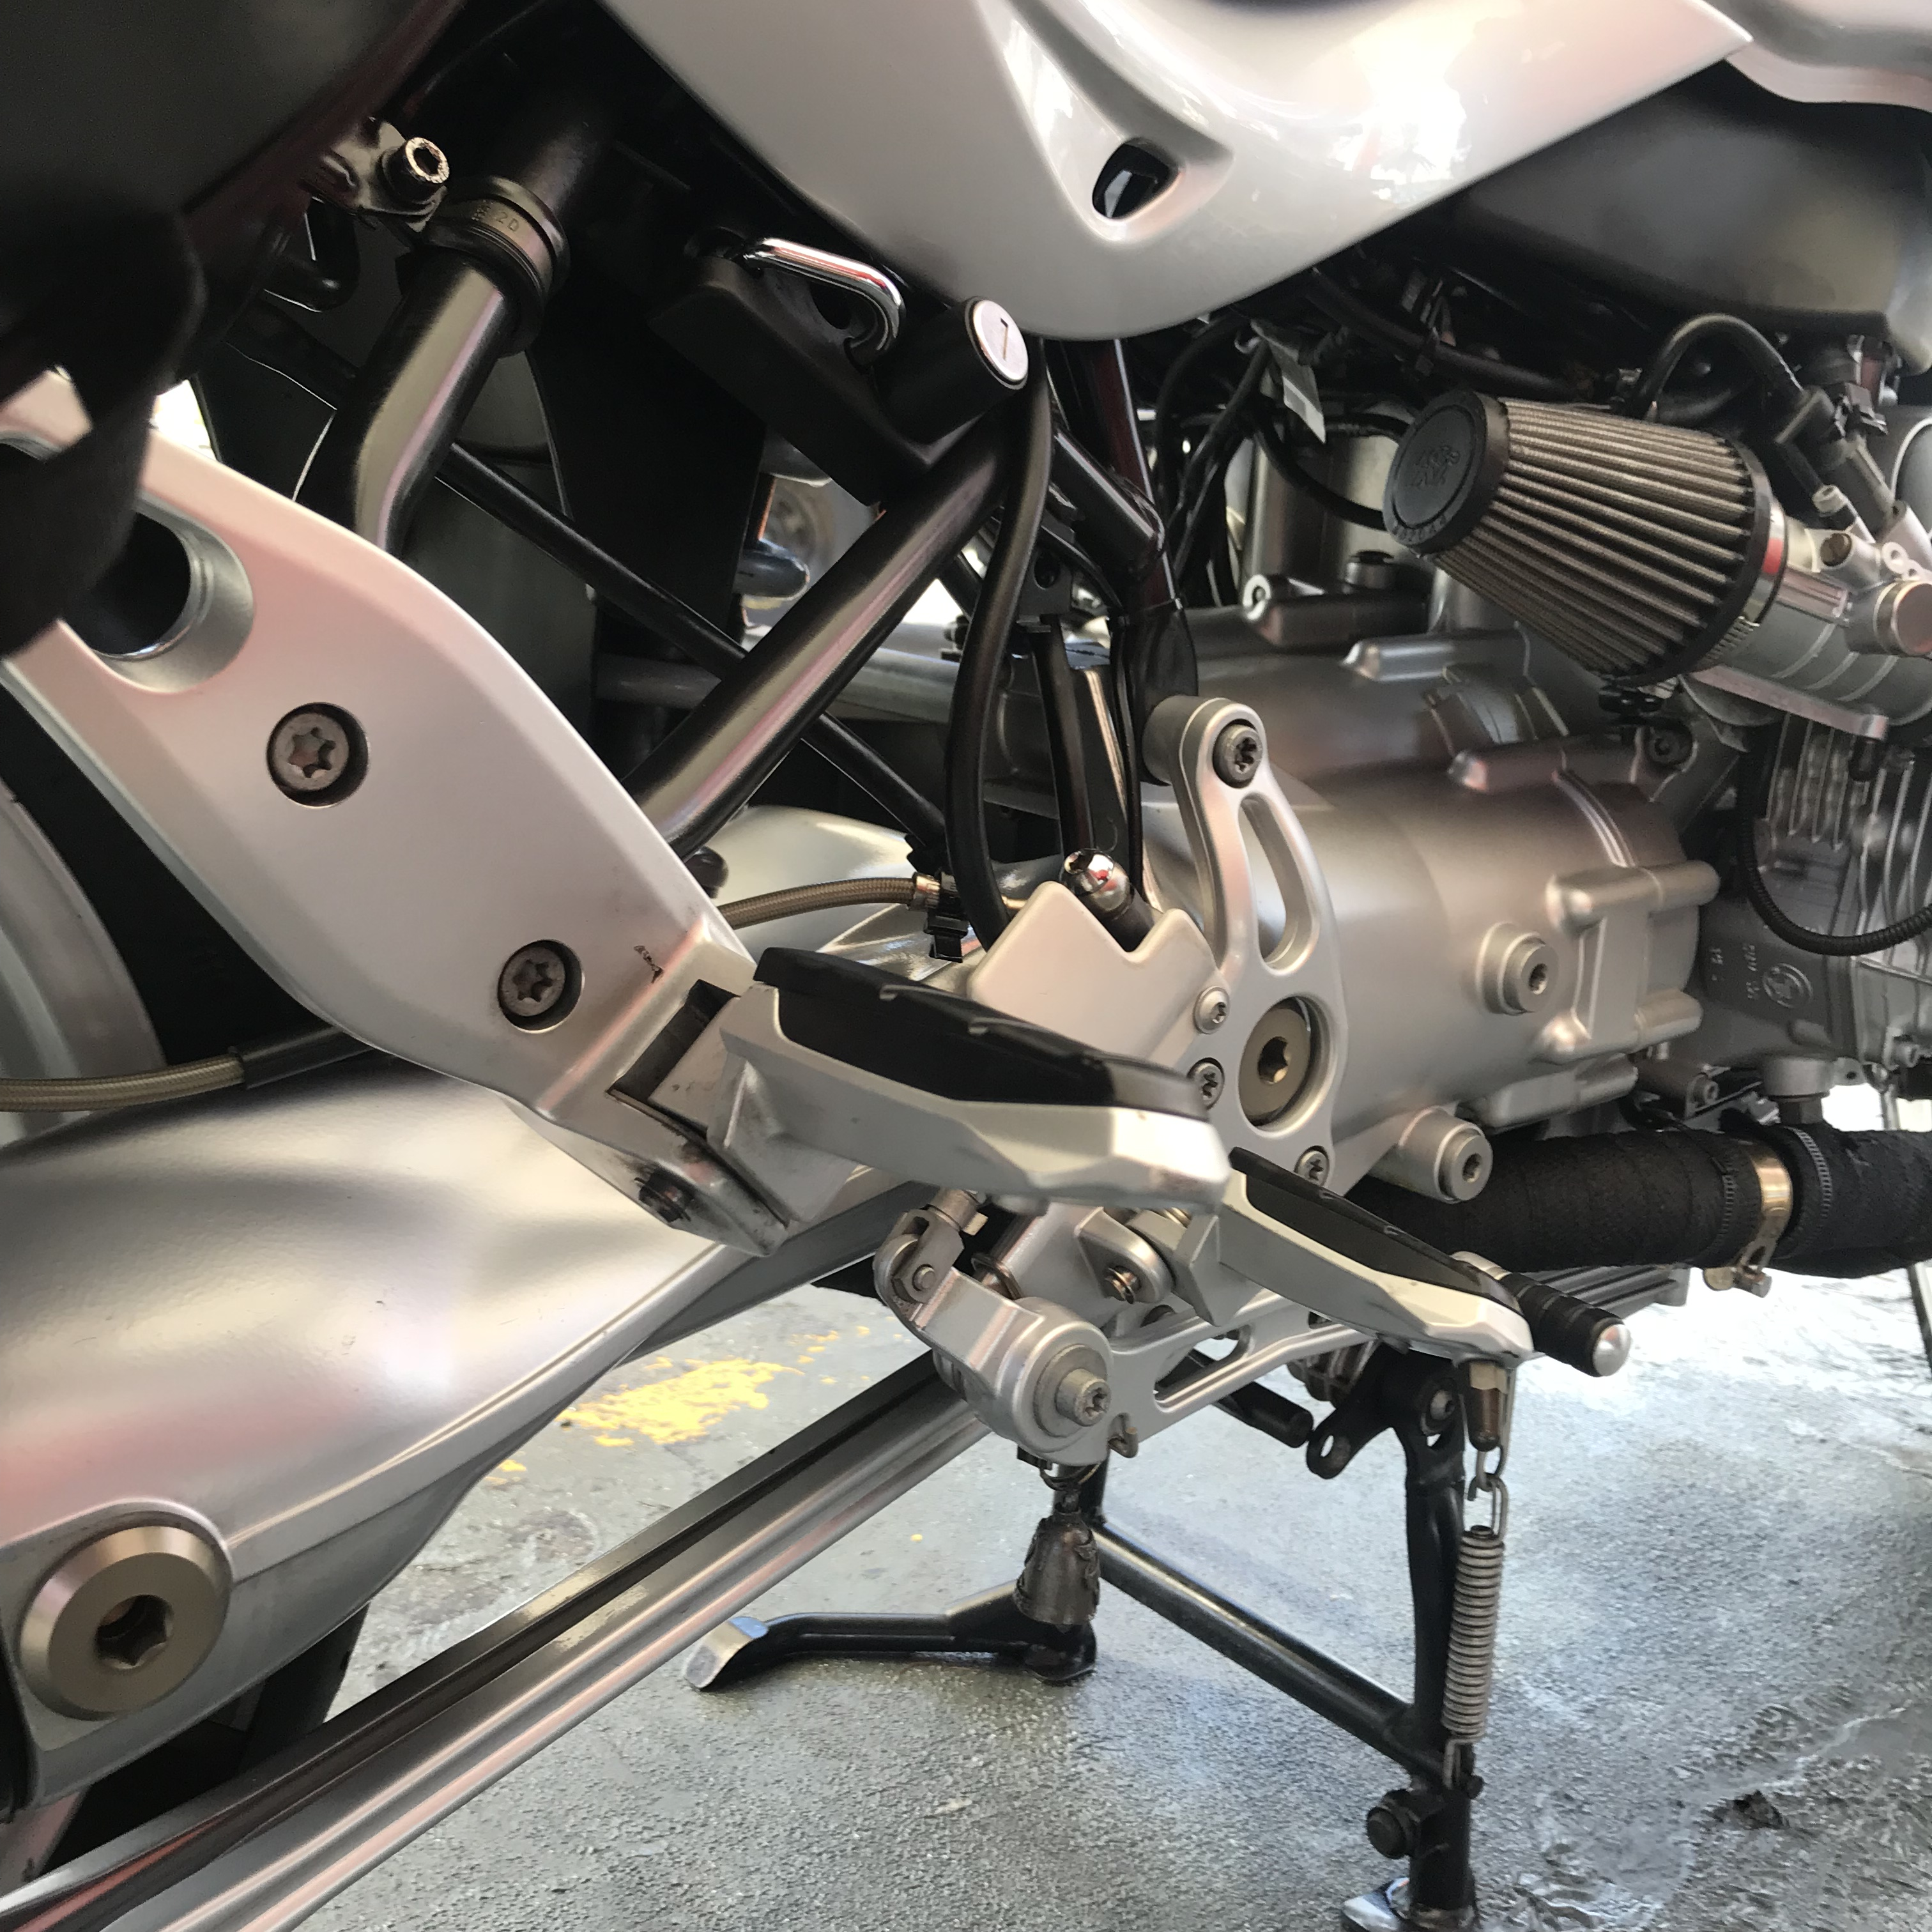 Professional detailing of motocyscle in Miami